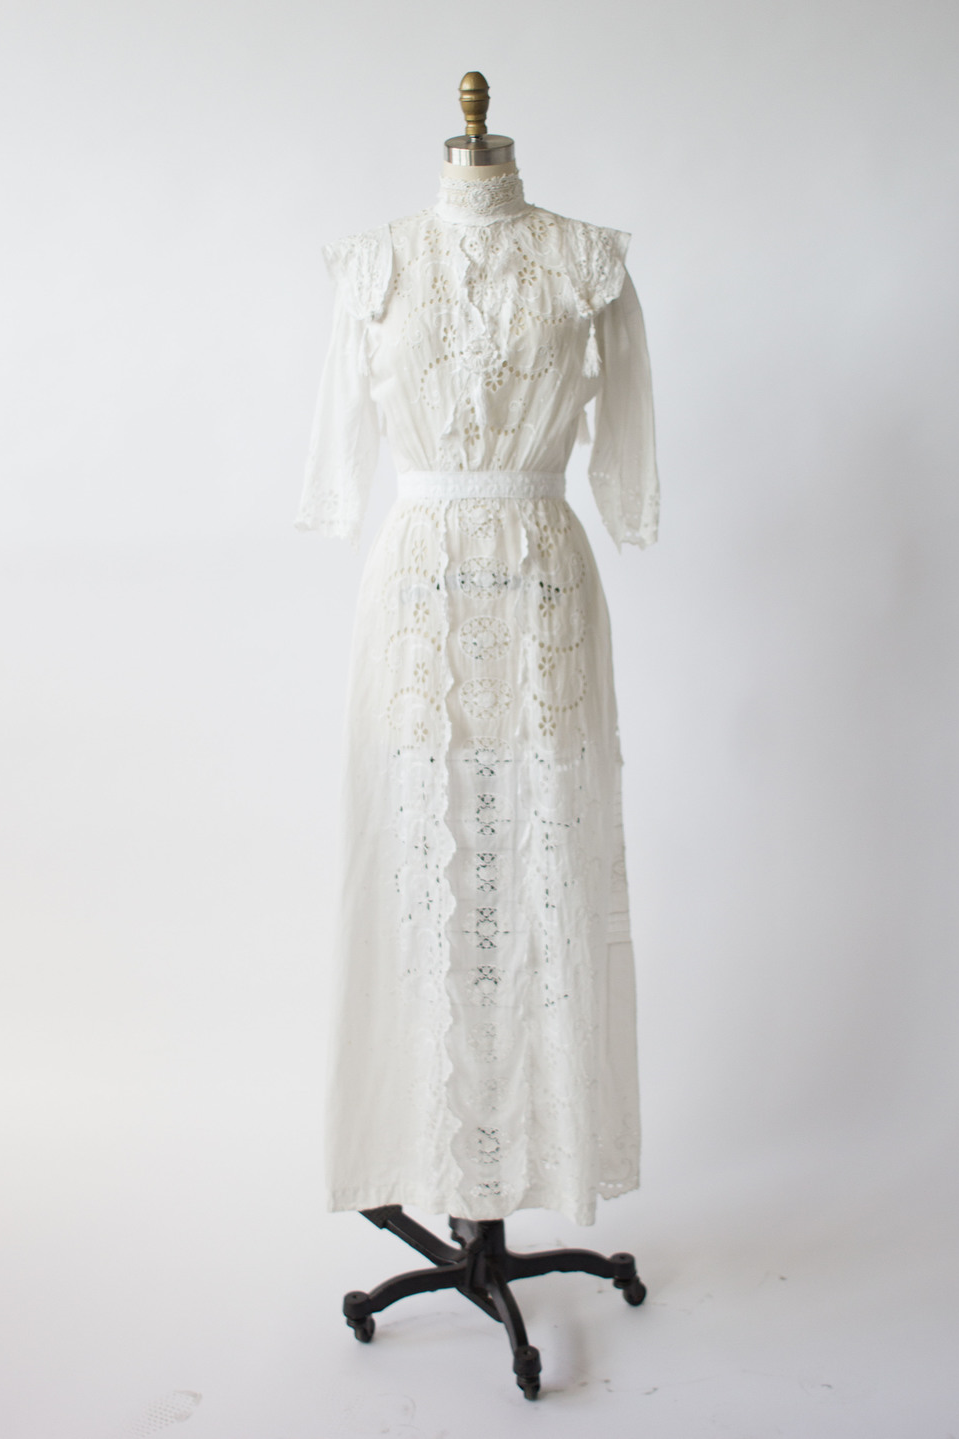 Top 10 Edwardian Wedding Dresses Vintage Clothing Store Online Austin Texas Dalena Vintage